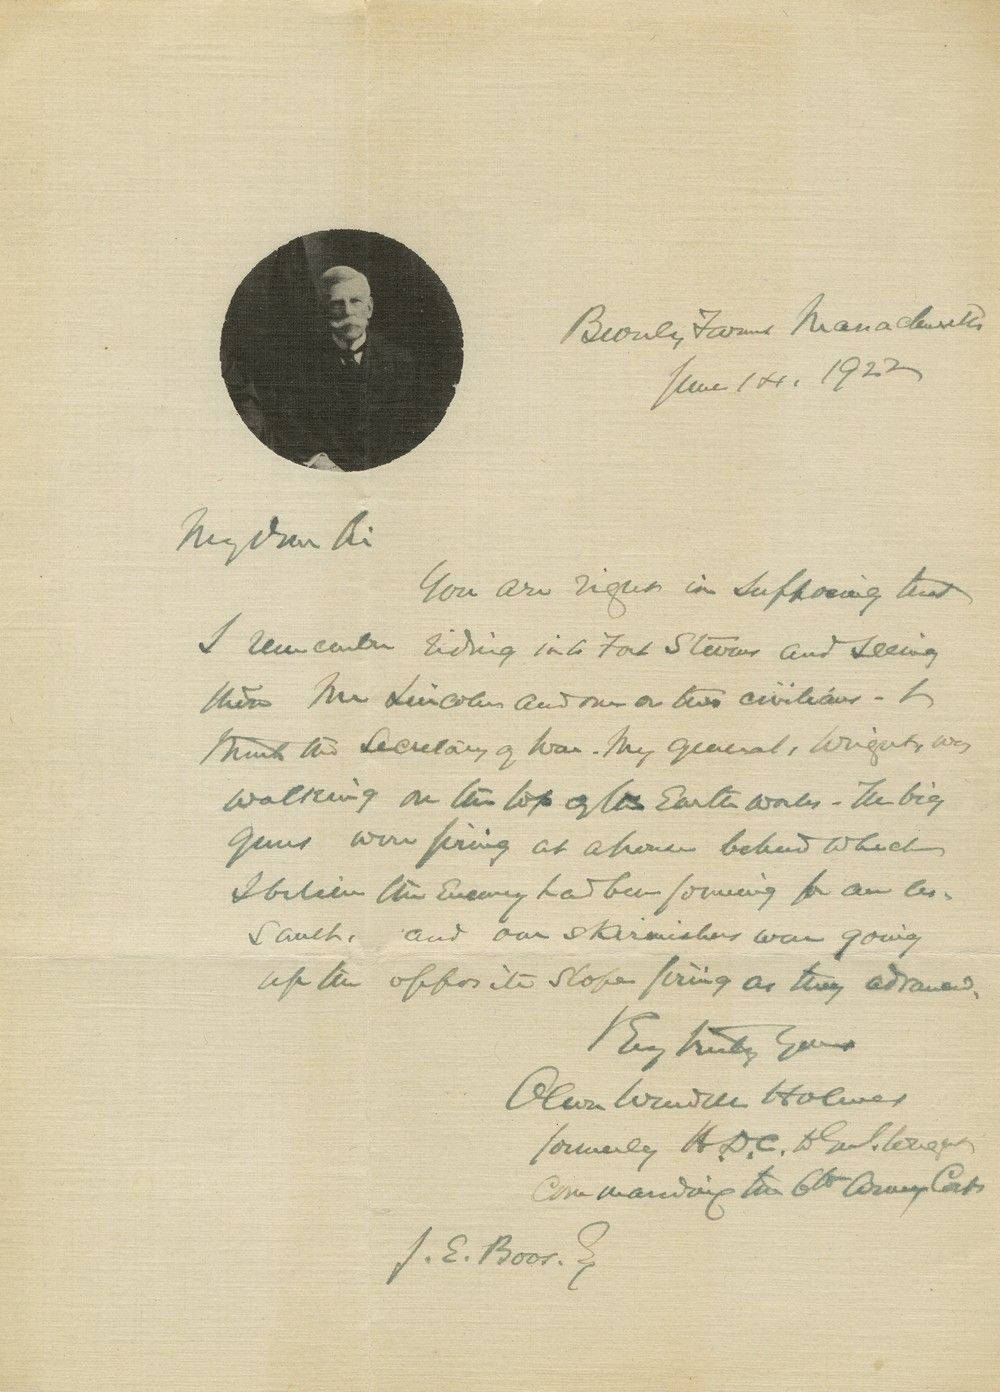 Oliver Wendell Holmes: At Fort Stevens, Abraham Lincoln Was Forced to Duck From Enemy Fire